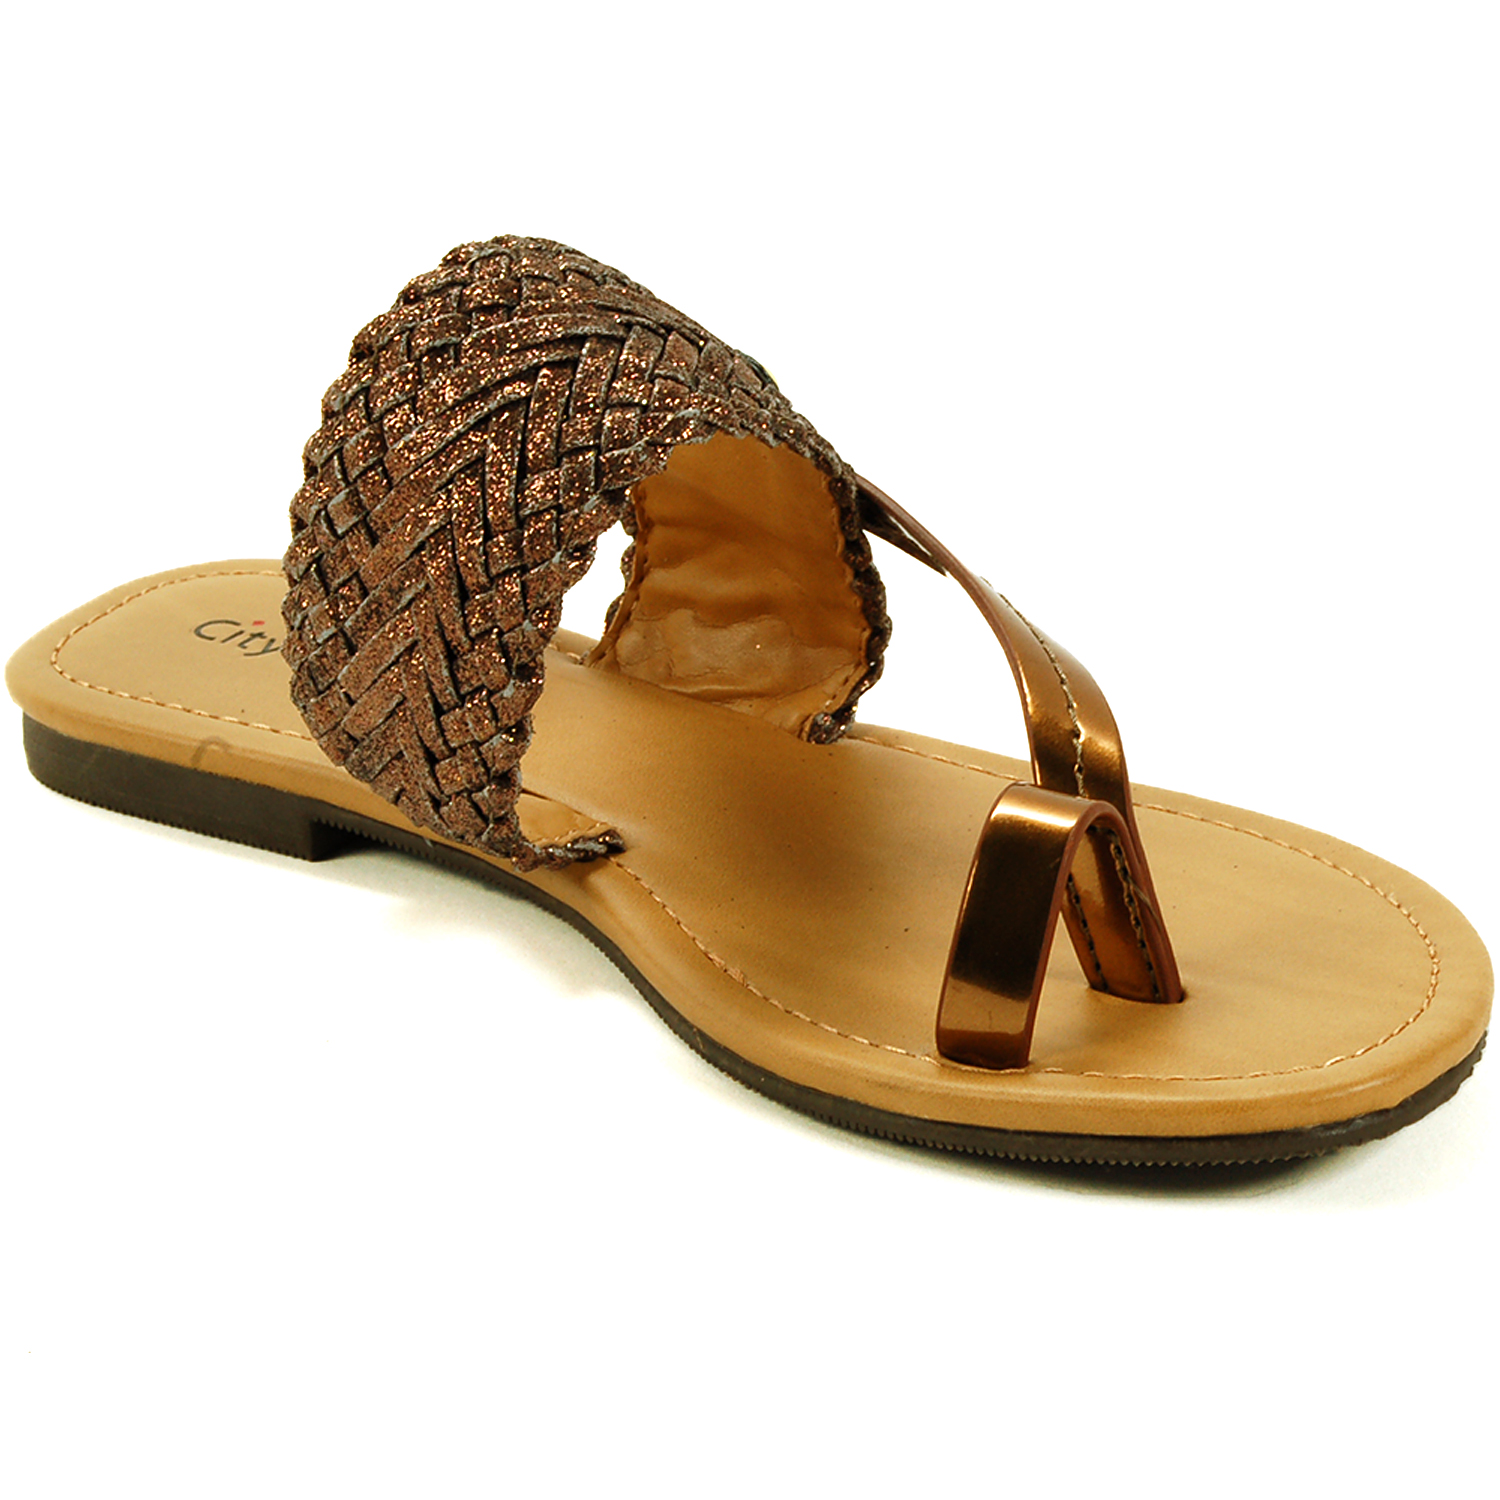 Perfect Toms Womens Bella Espadrille Sandal  Look No Further Than These Sneakers From Nike Mephisto Leather Toe Loop Sandals  Helen, SHOPCOM, $14900